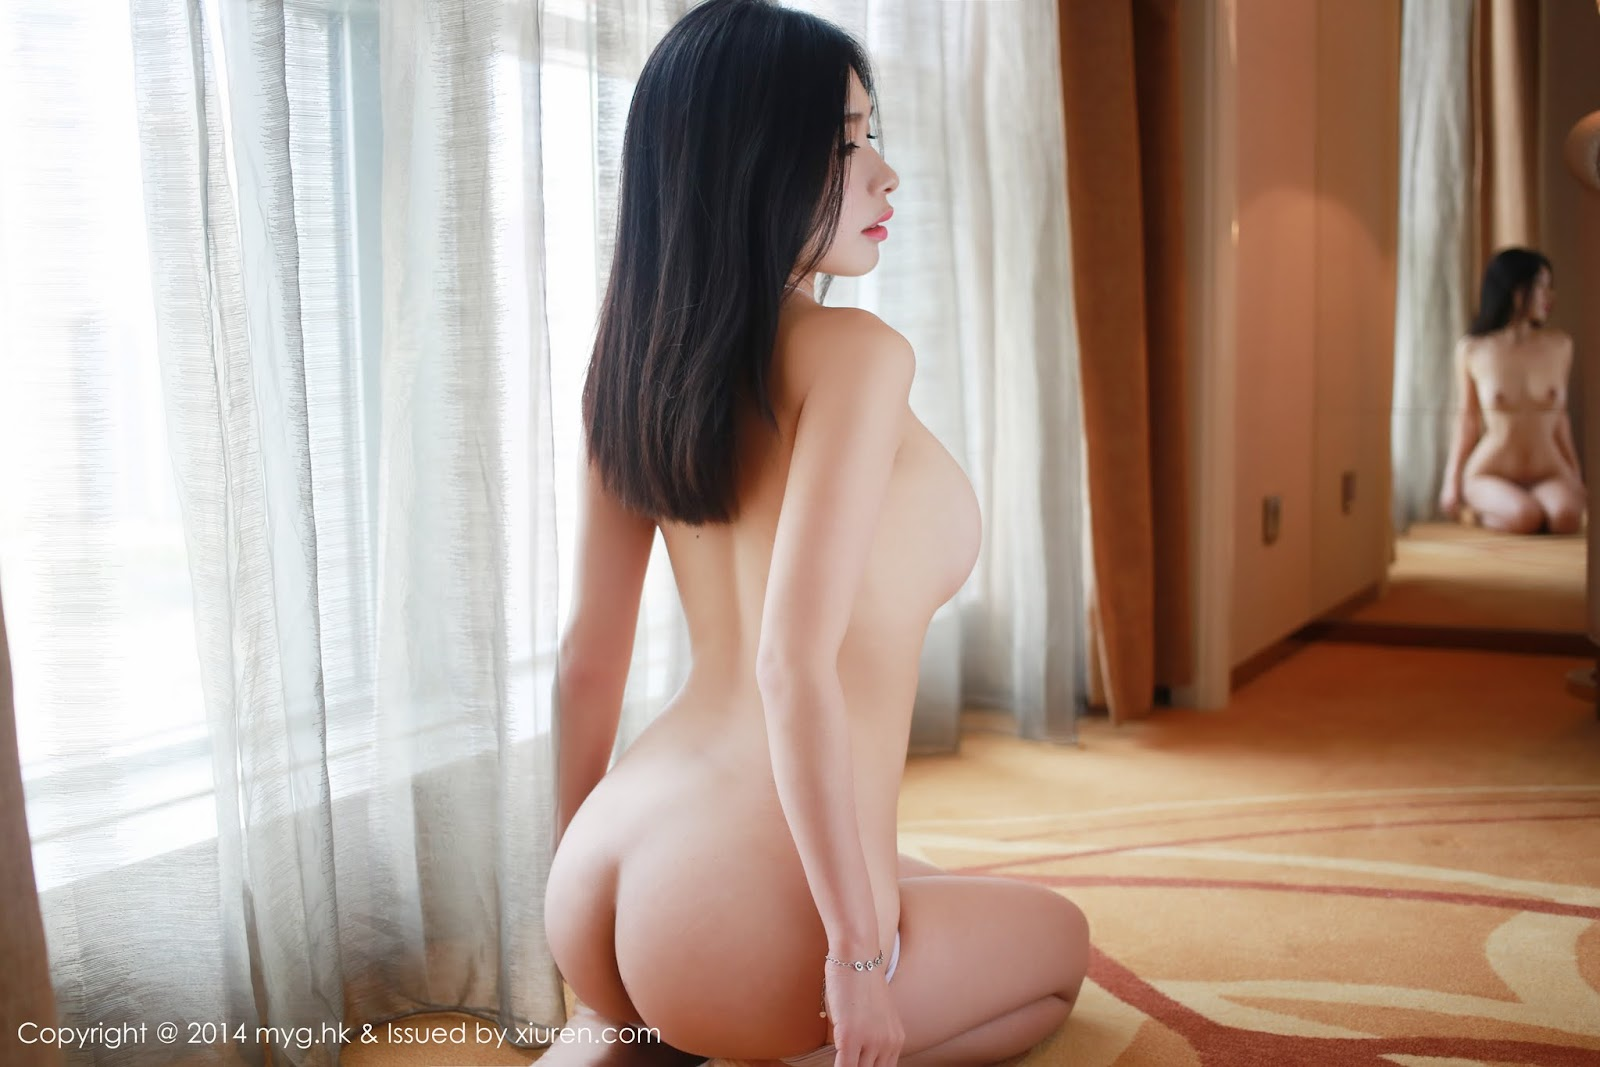 0019 - Beautiful Naked Girl Model MYGIRL VOL.35